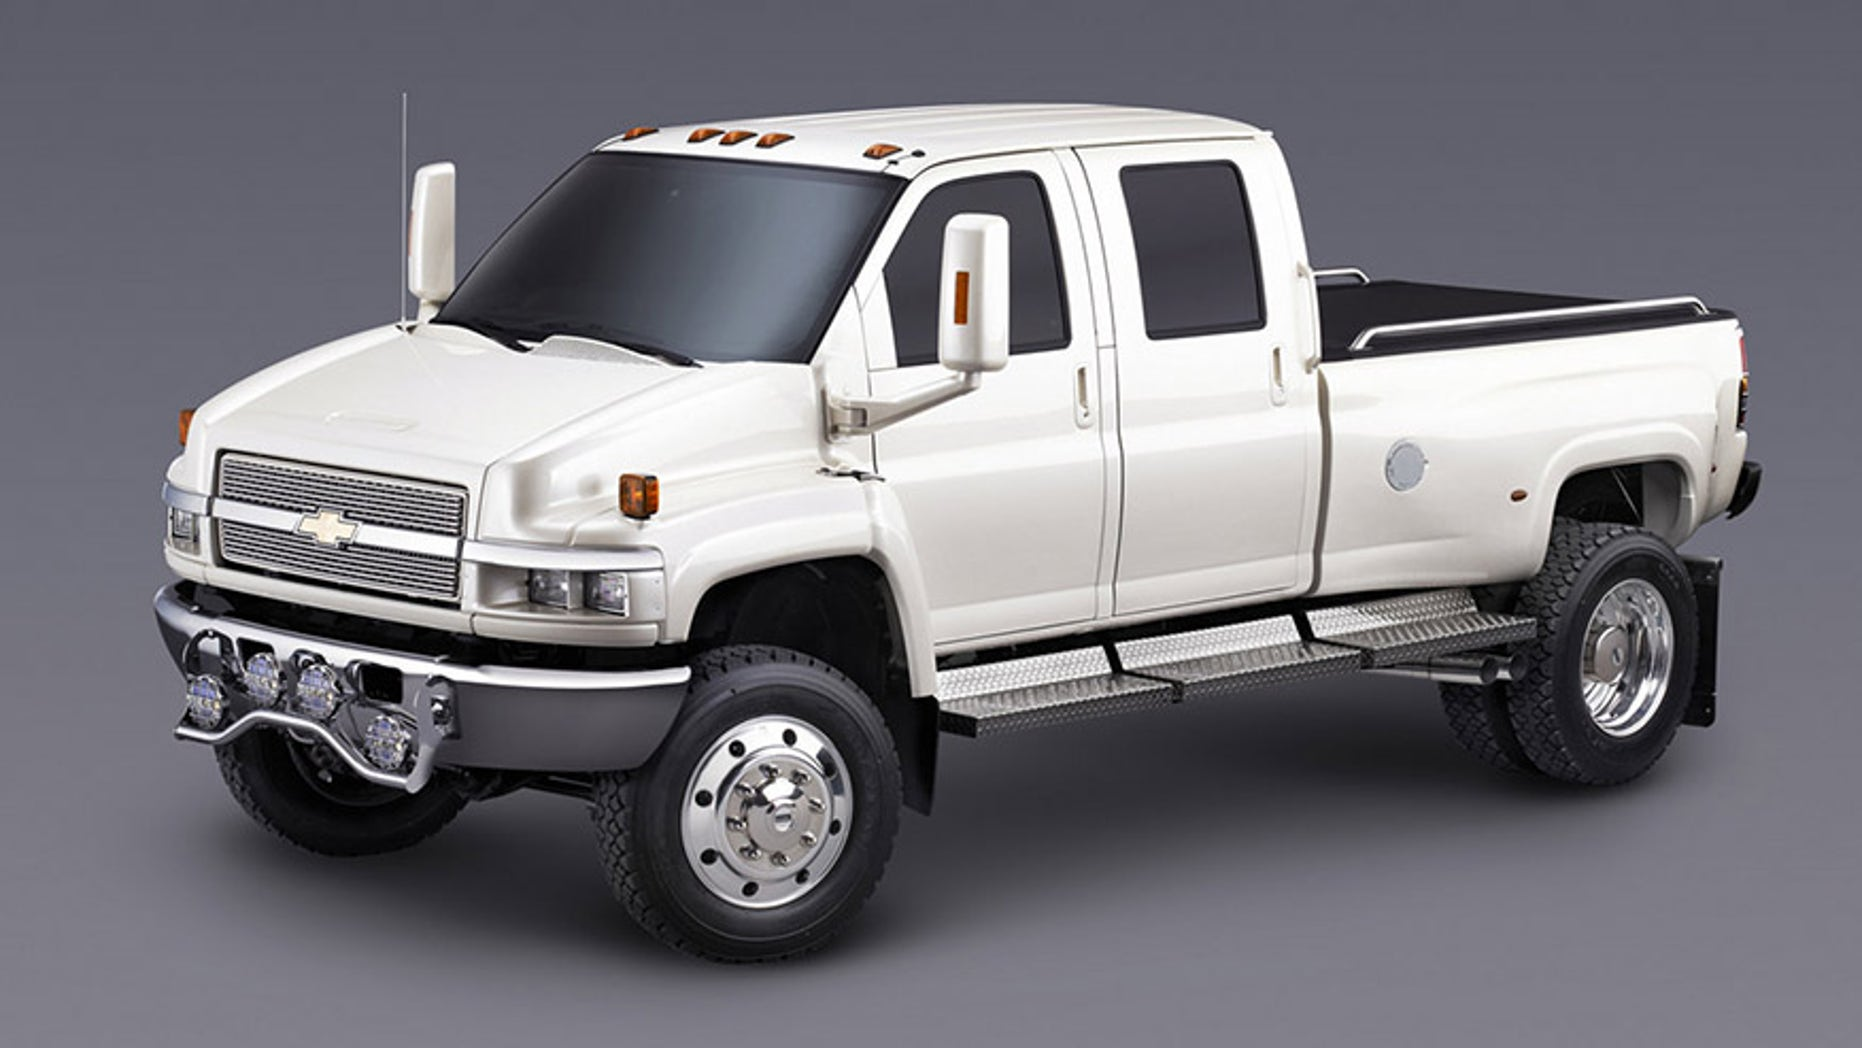 Chevrolet Will Sell Its Biggest Silverado Ever When It Launches A New Line Of Trucks In The Medium Duty Truck Segment Next Year